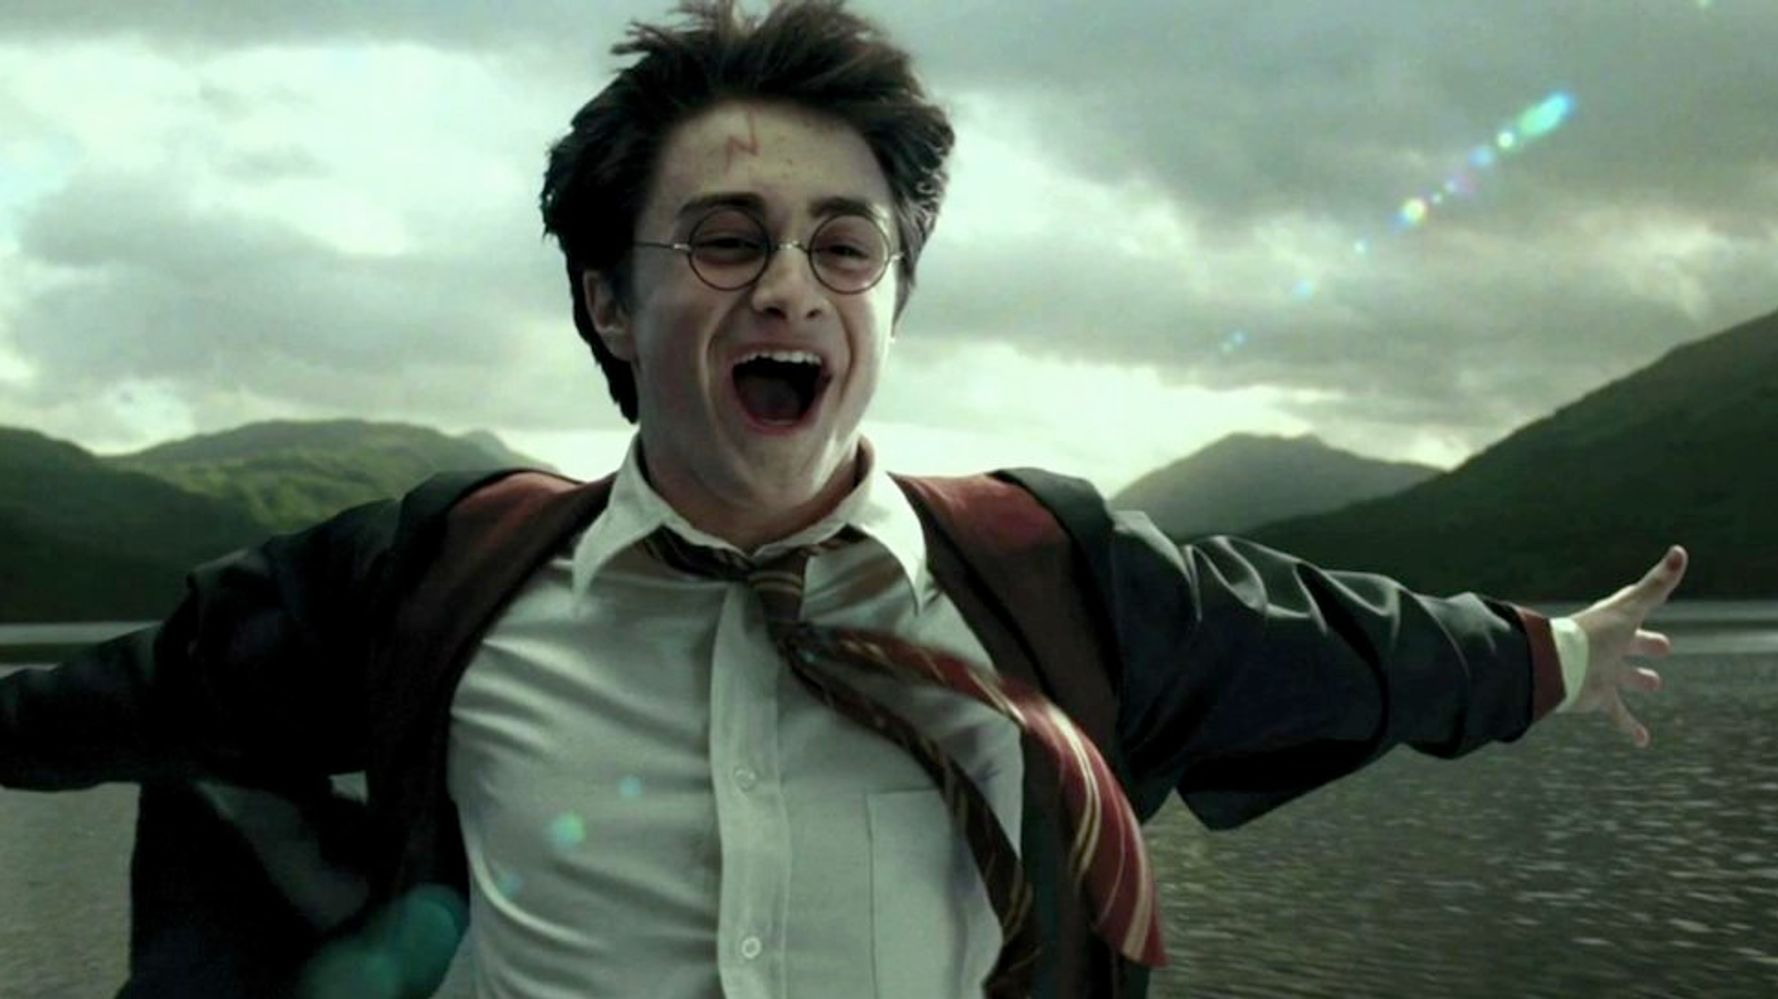 194 Thoughts I Had While Watching The 'Harry Potter' Franchise For